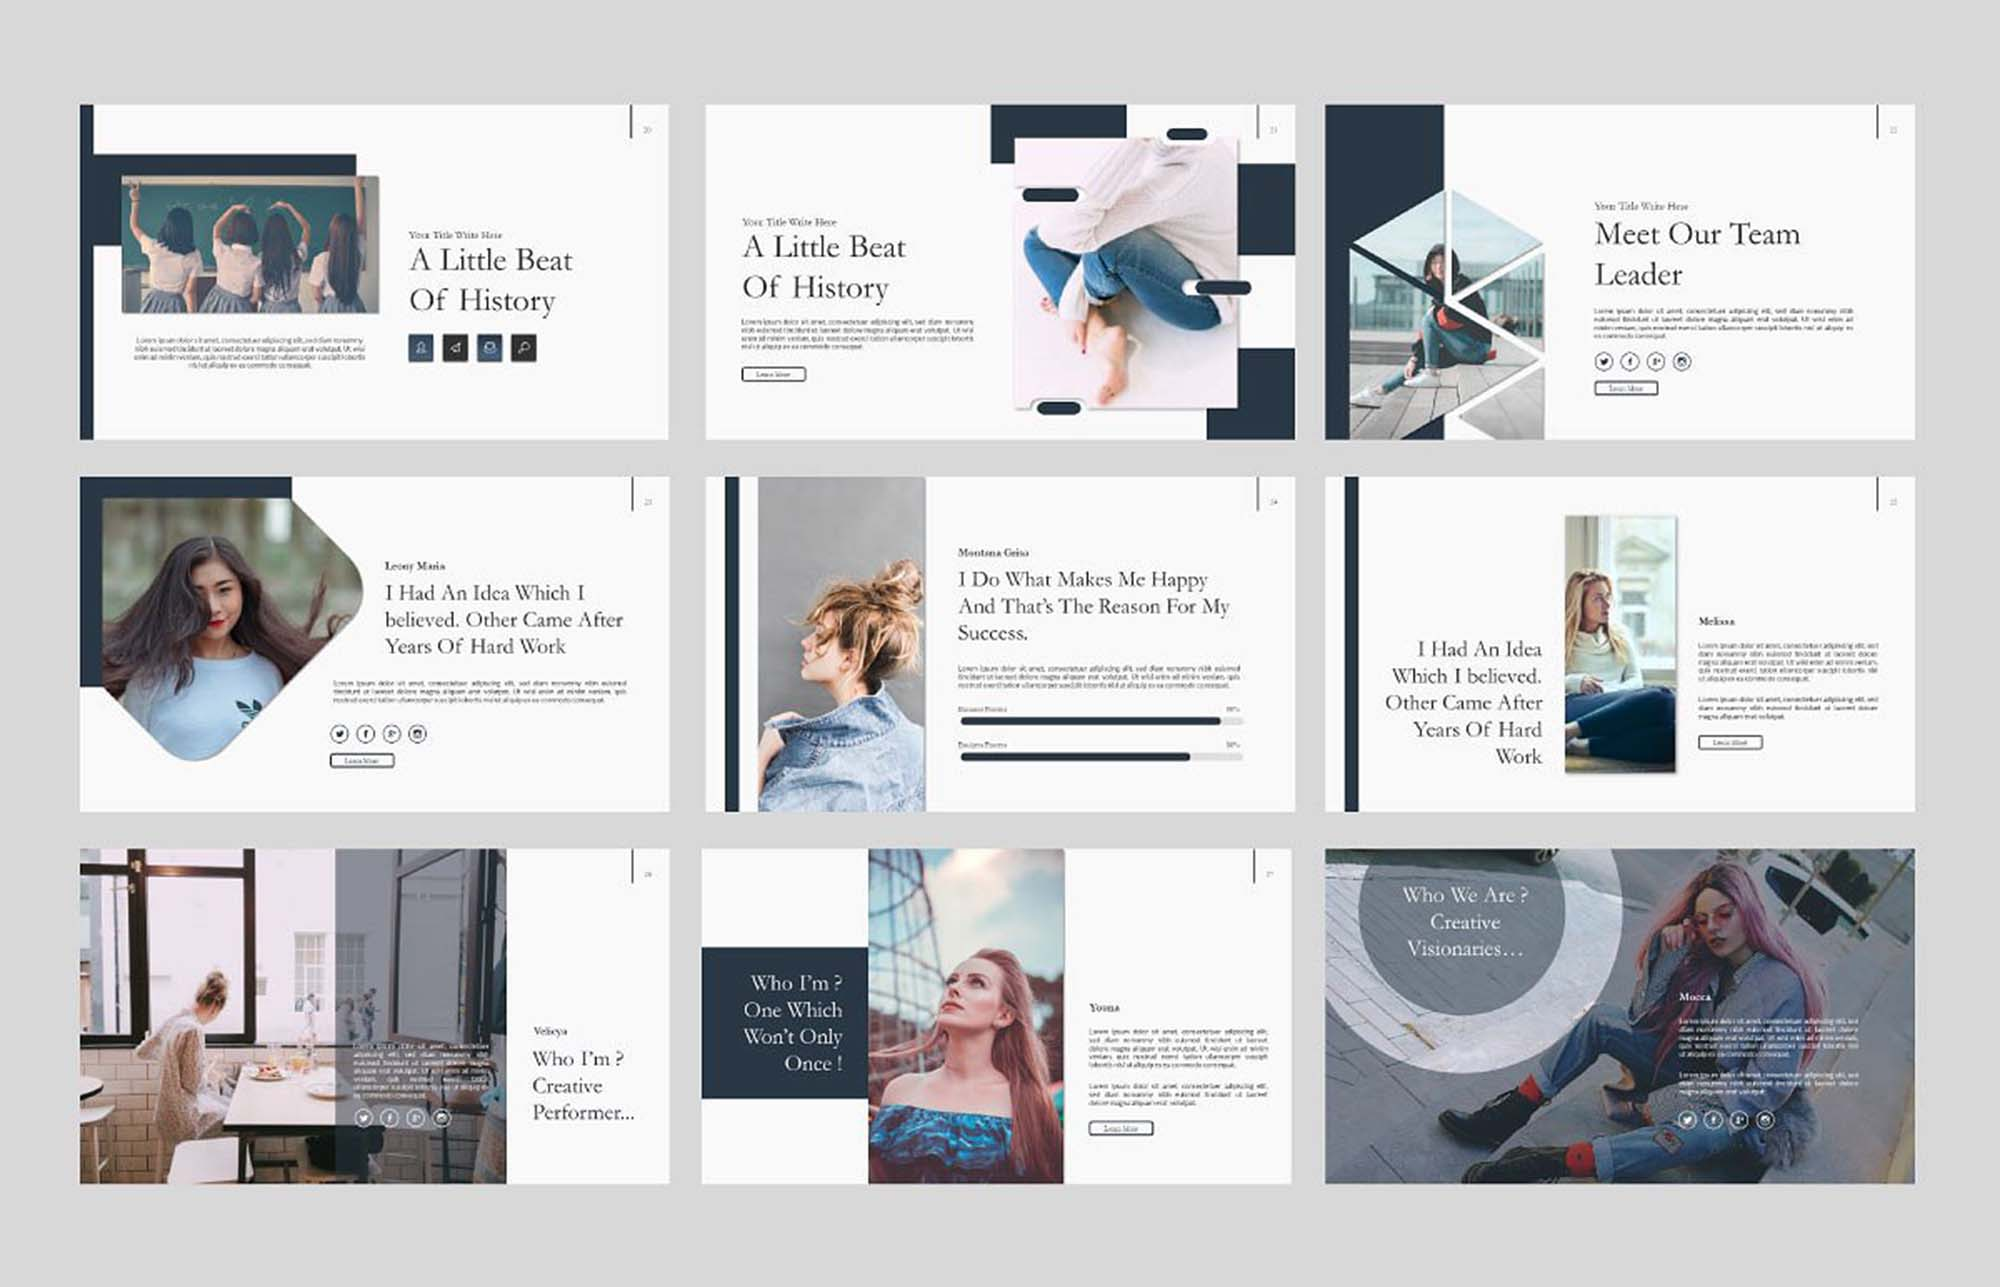 Ailie free powerpoint presentation template ailie powerpoint presentation ailie powerpoint presentation toneelgroepblik Image collections